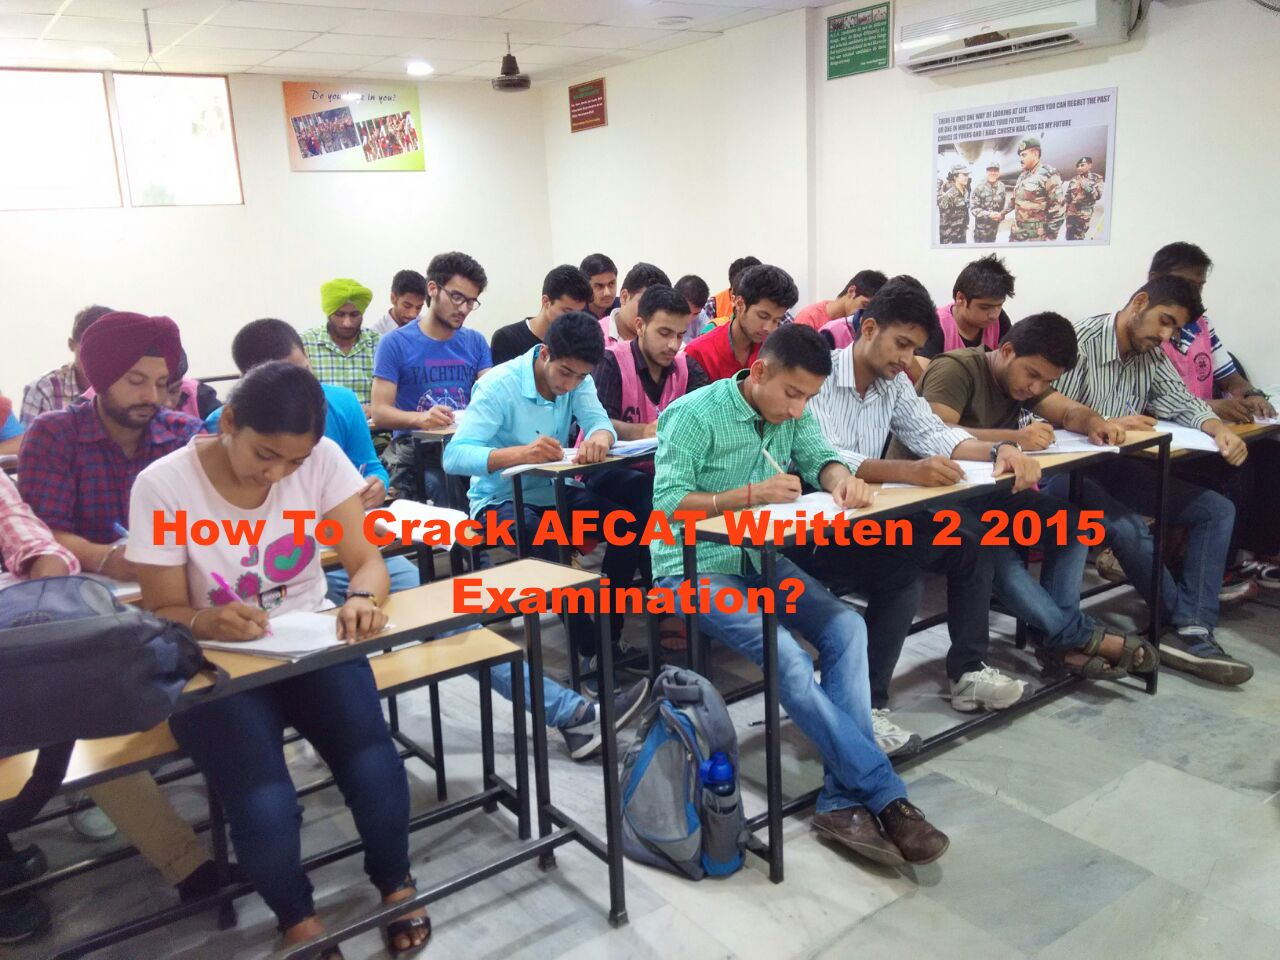 How To Crack AFCAT Written 2 2015 Examination?